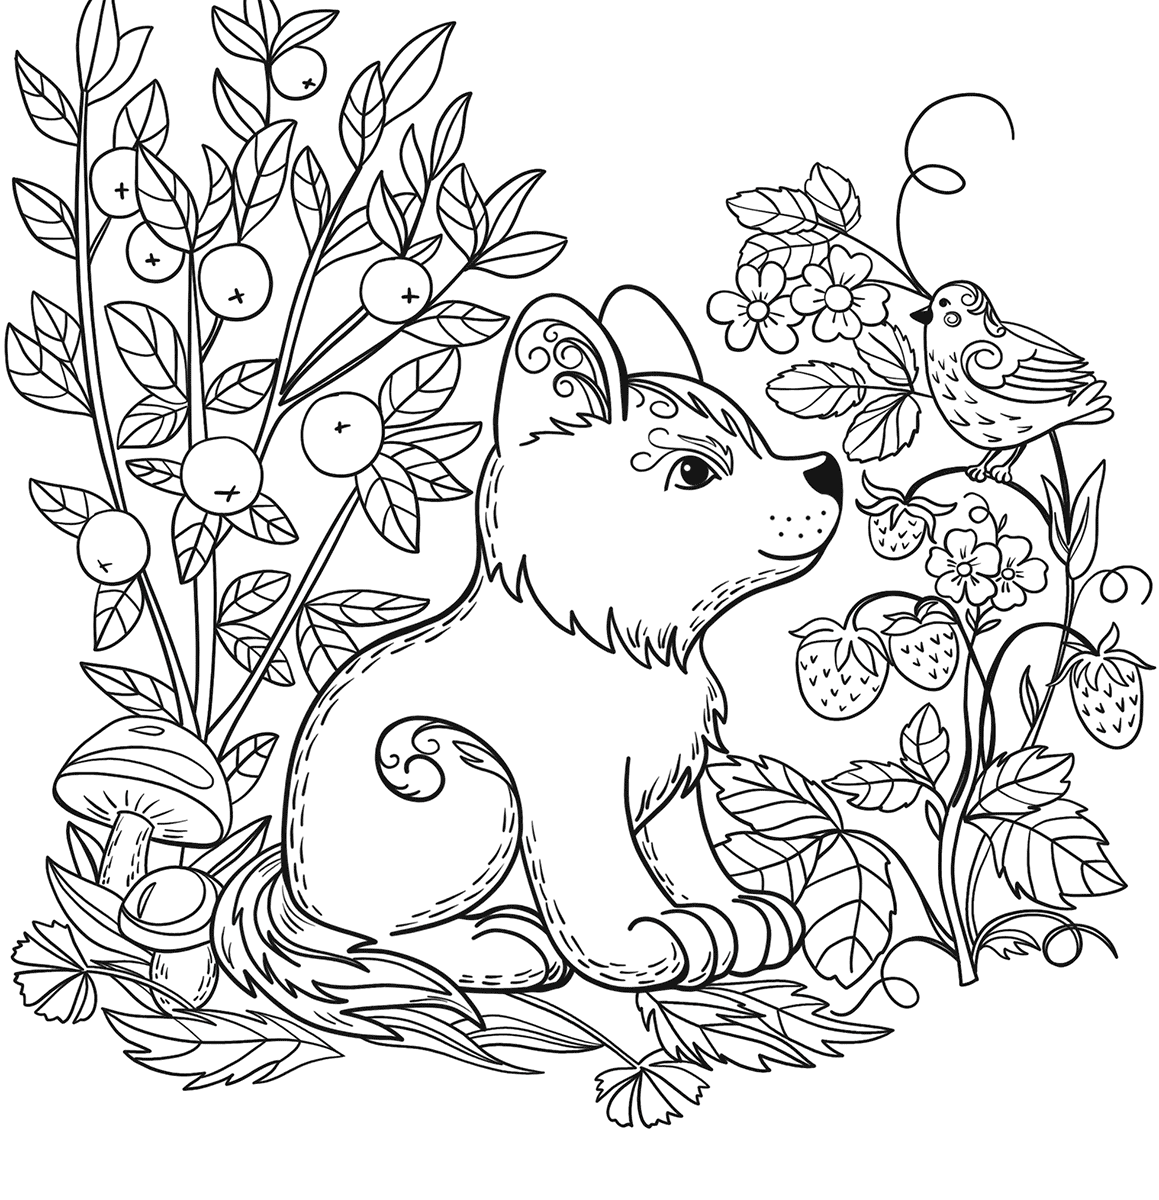 Forest Coloring Pages For Kids At Getcolorings